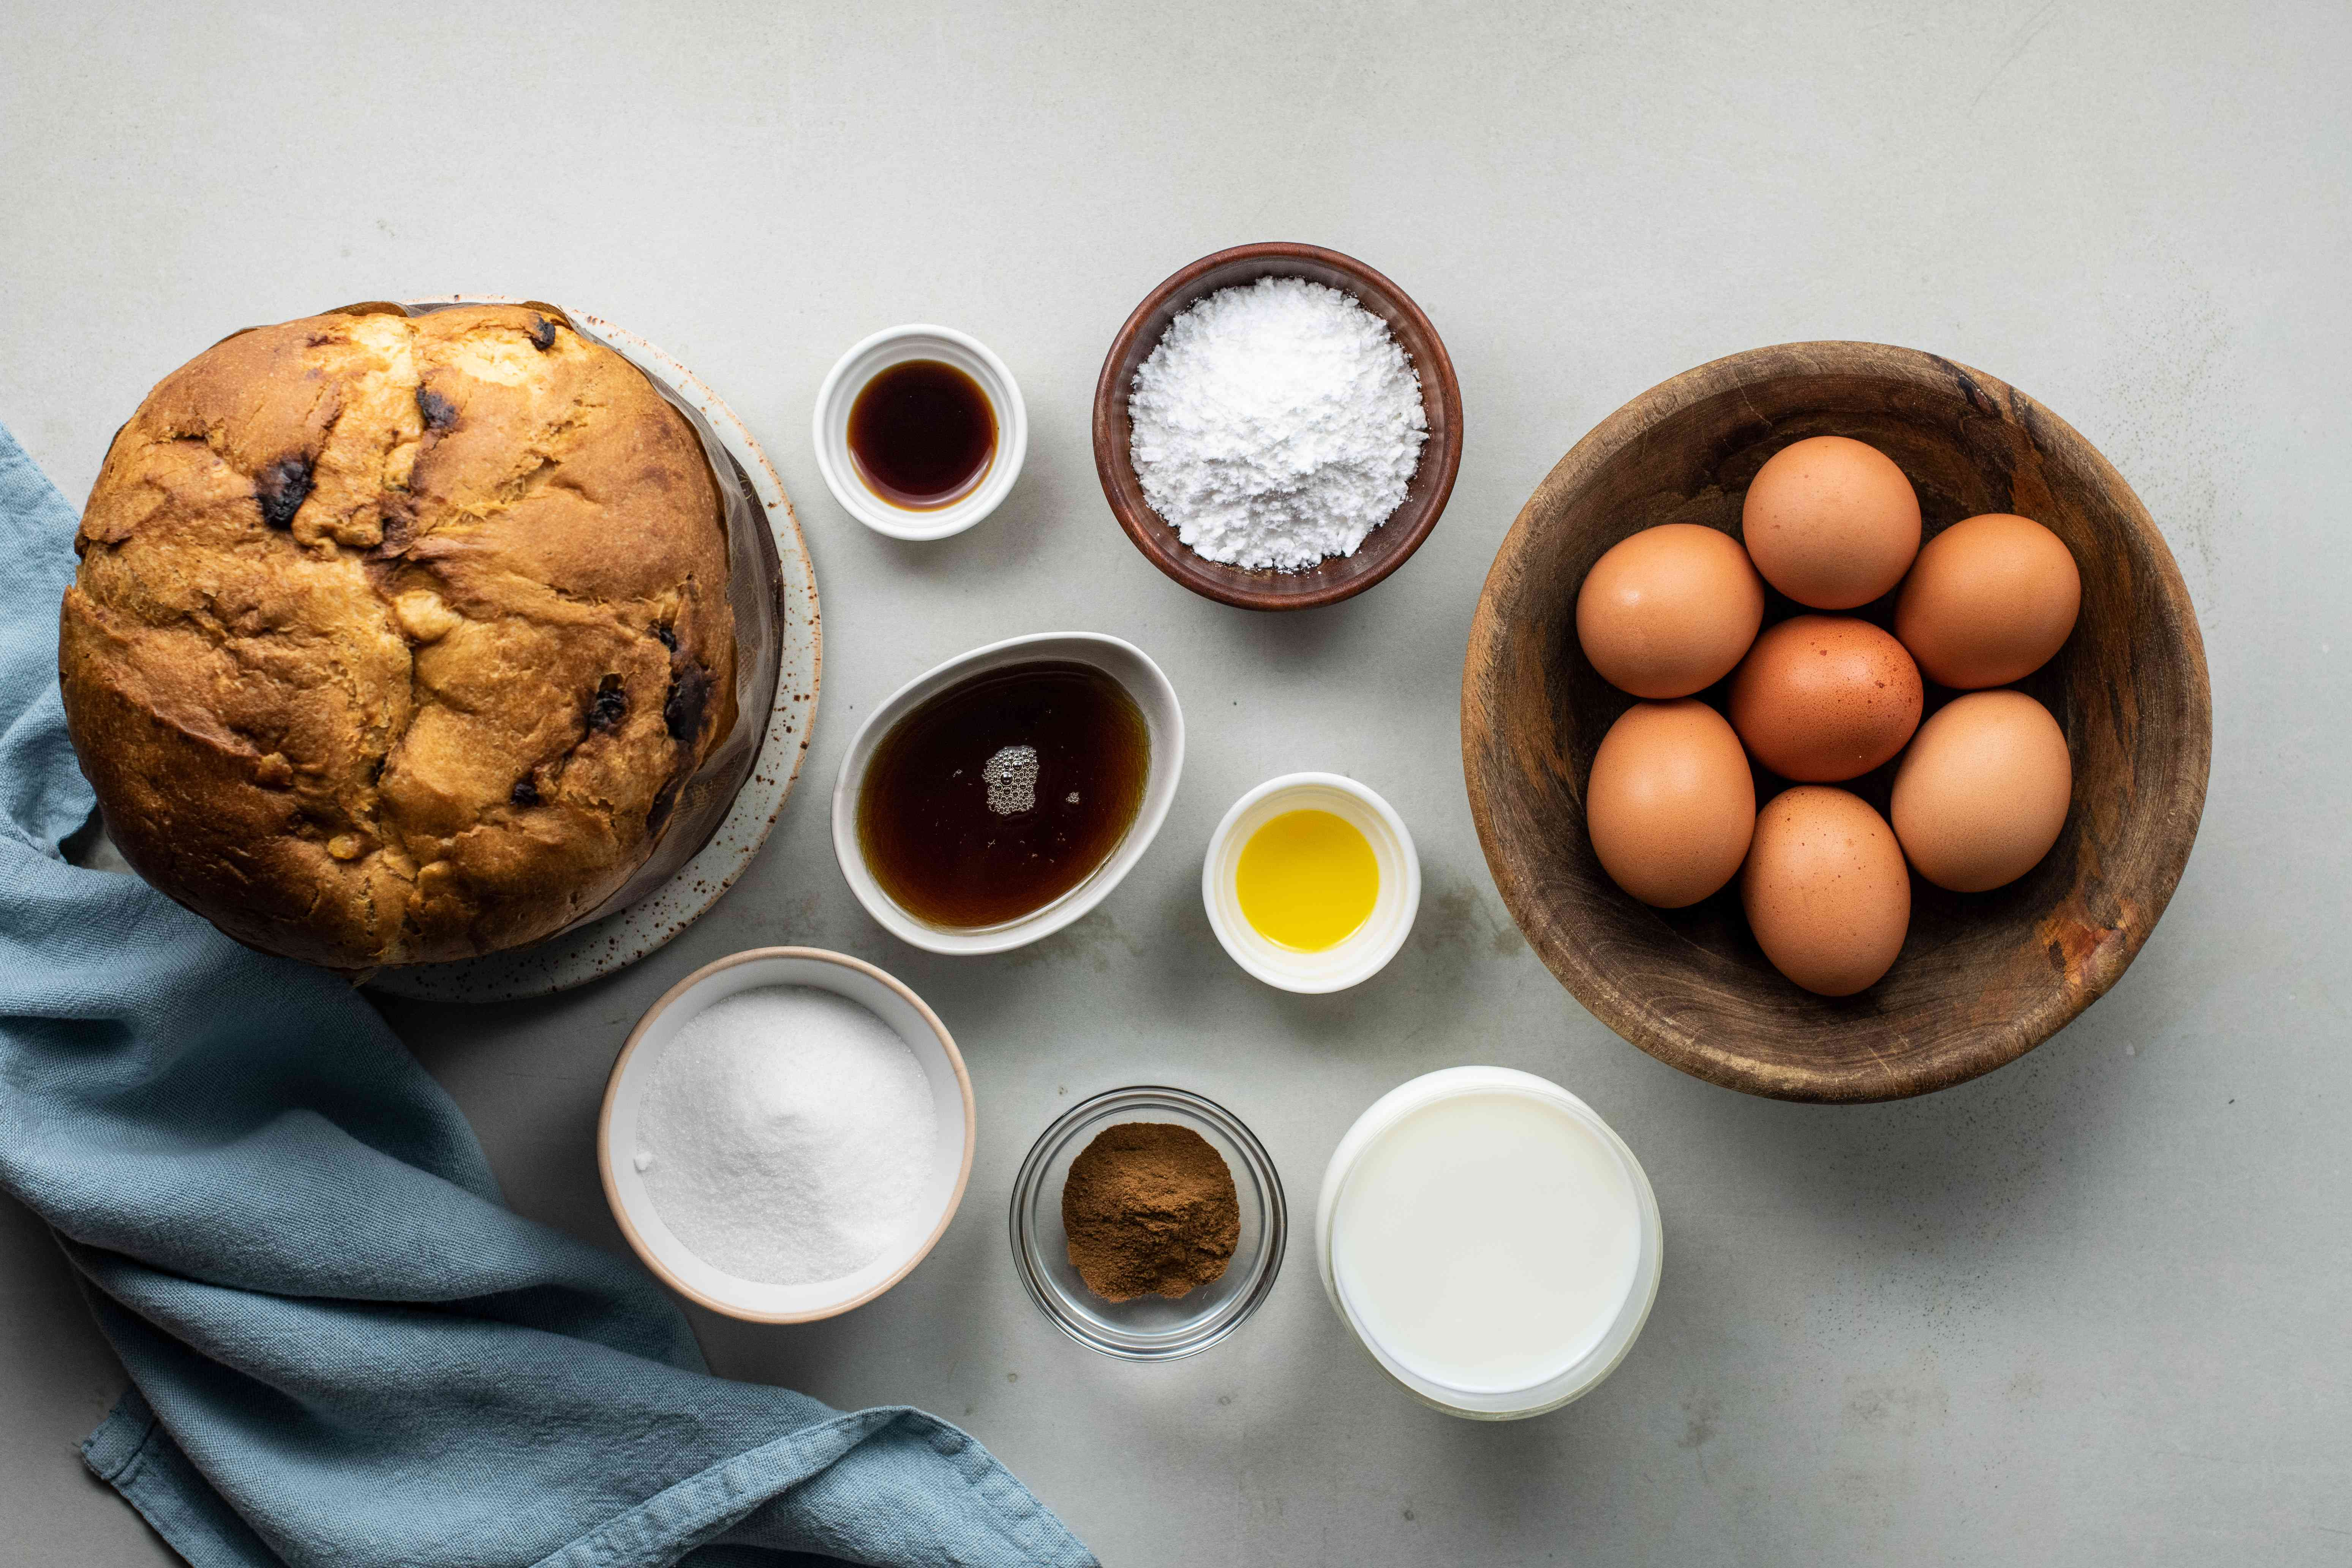 Ingredients for Panettone